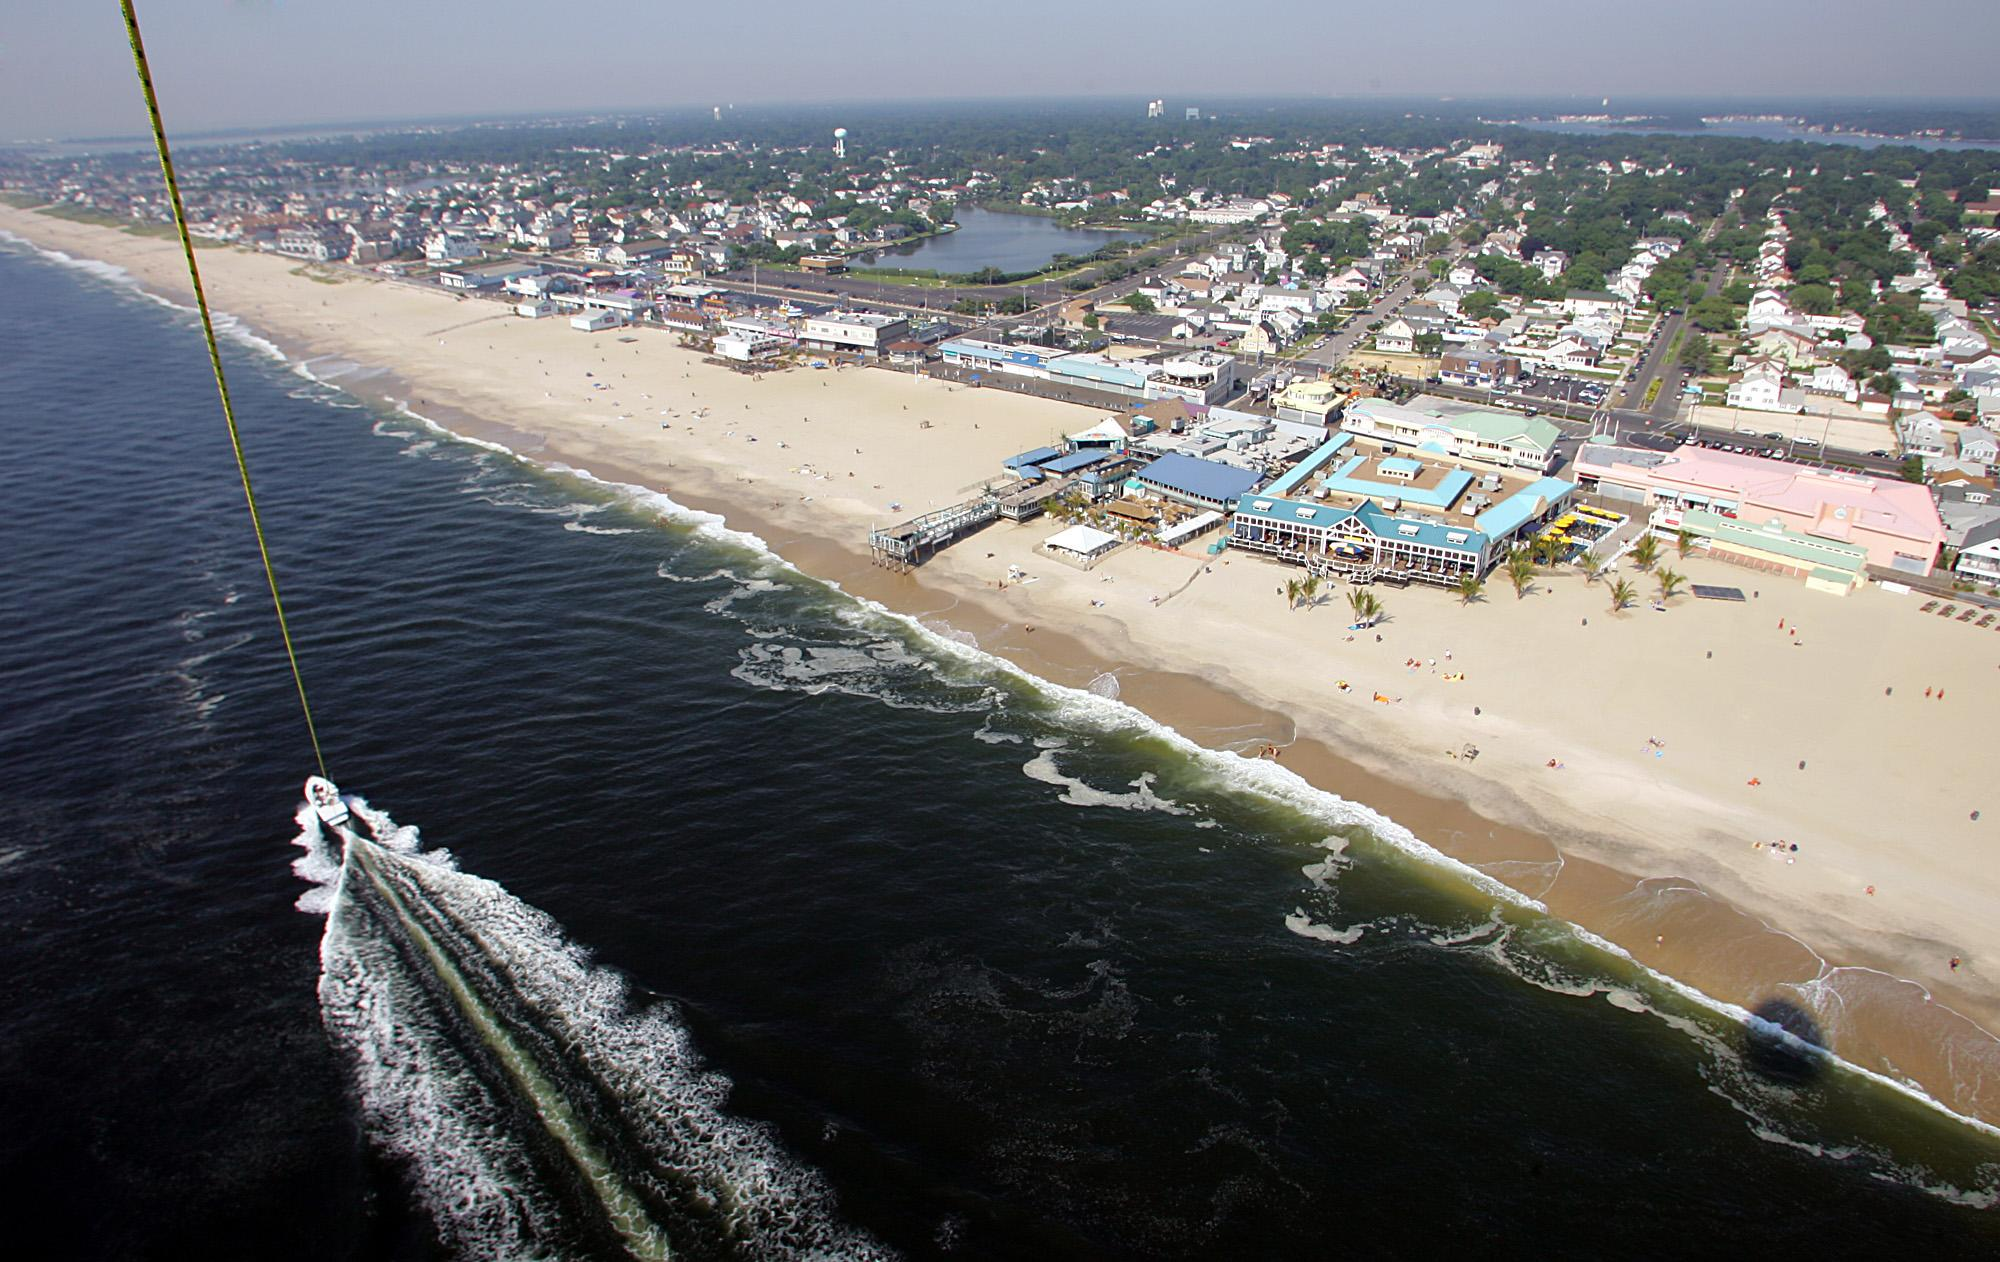 New Jersey beach owner sues over dune project